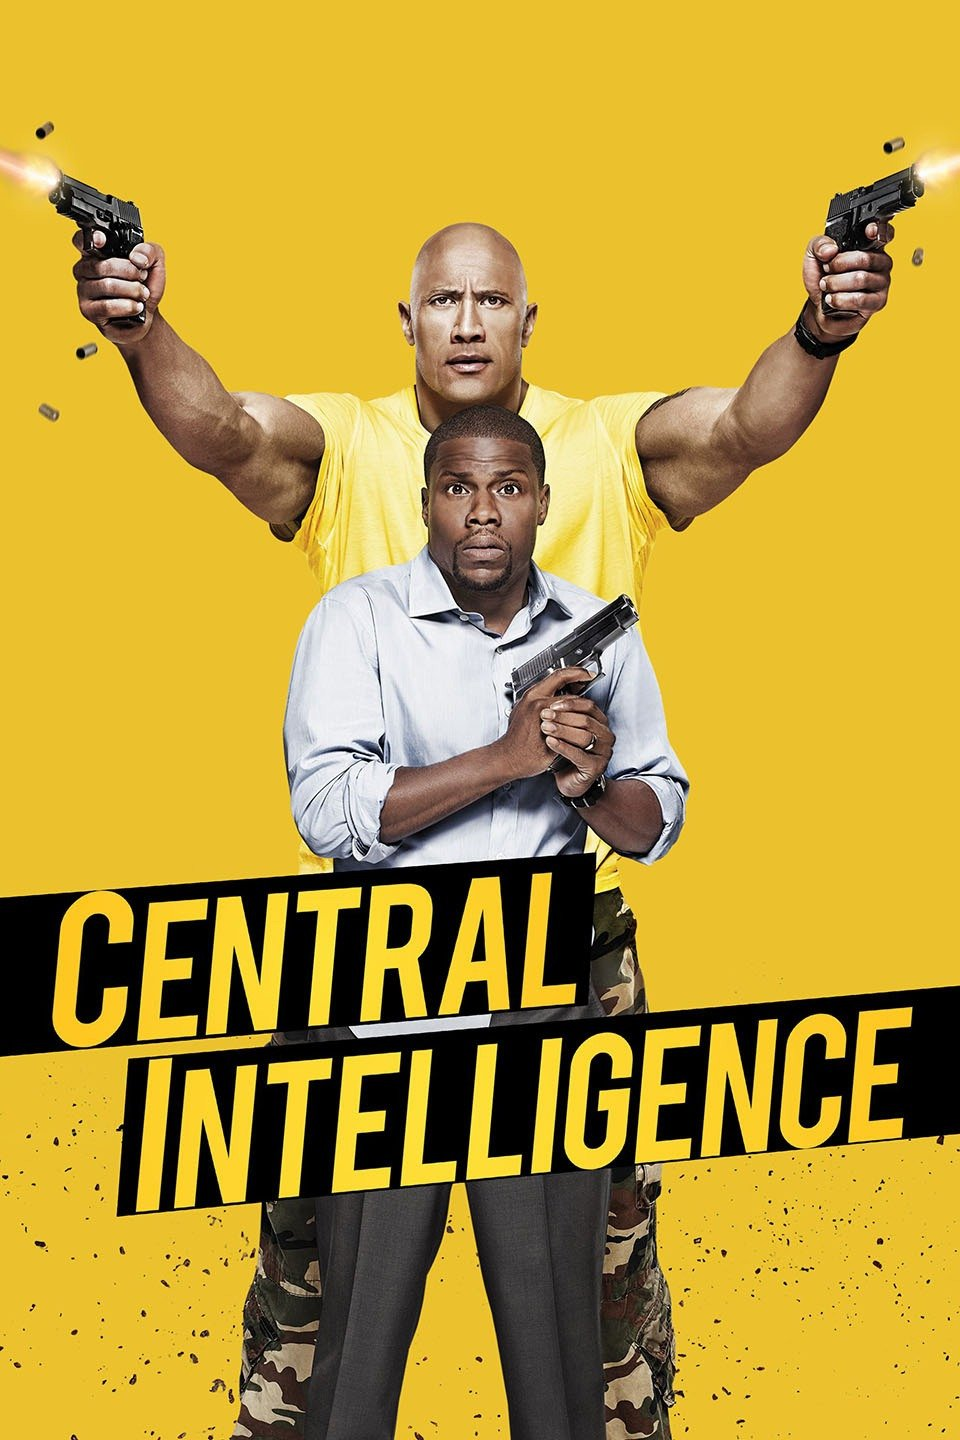 Central Intelligence 2015 Google Drive Link Full Movie Download BluRay 480p 350MB And 720p 750MB